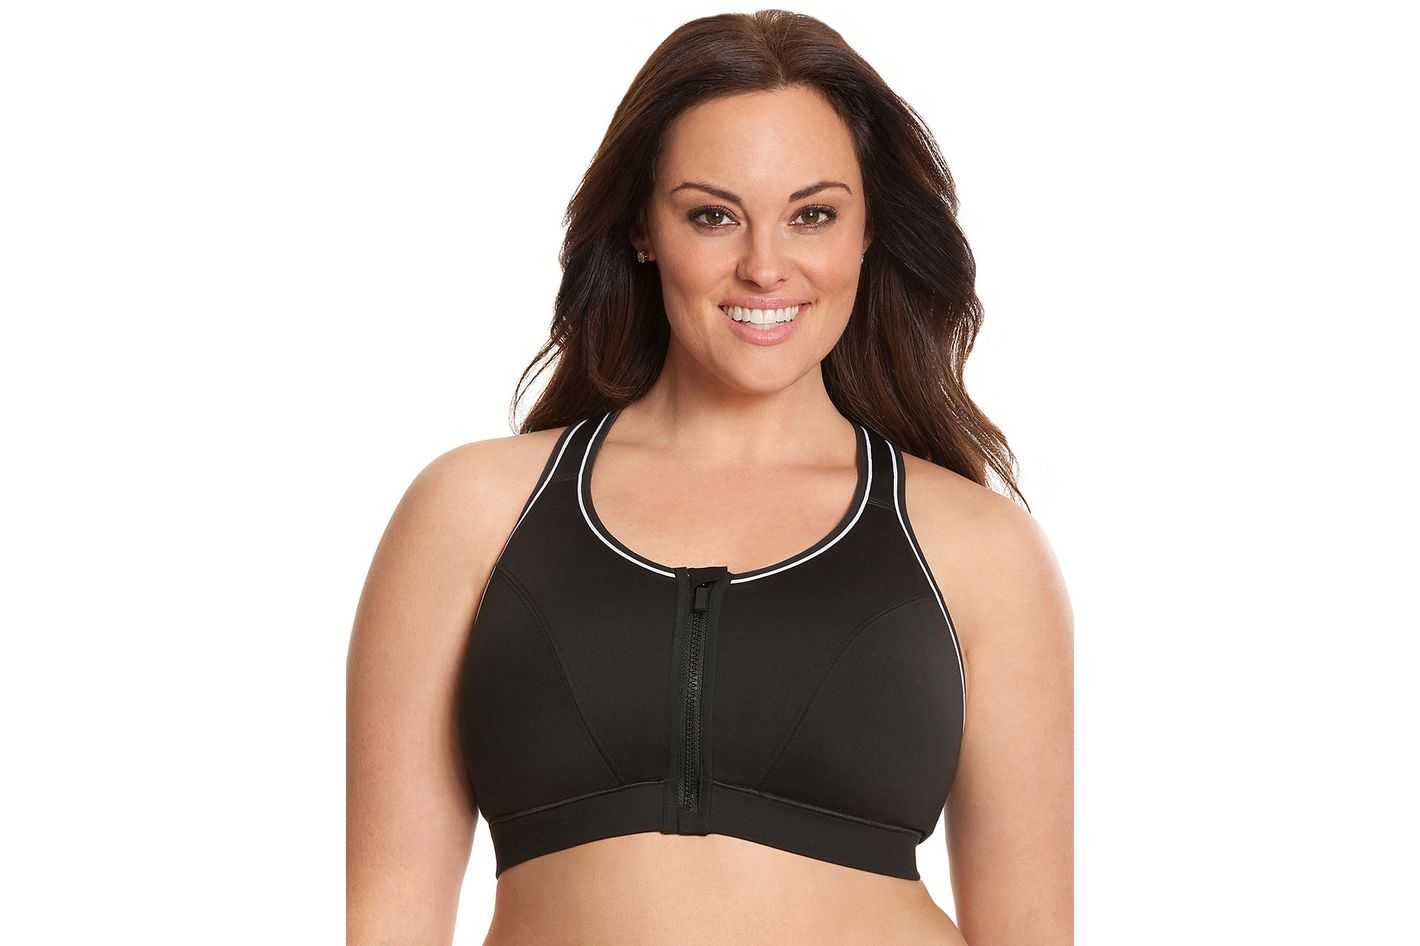 The Best Plus-Size Sports Bra